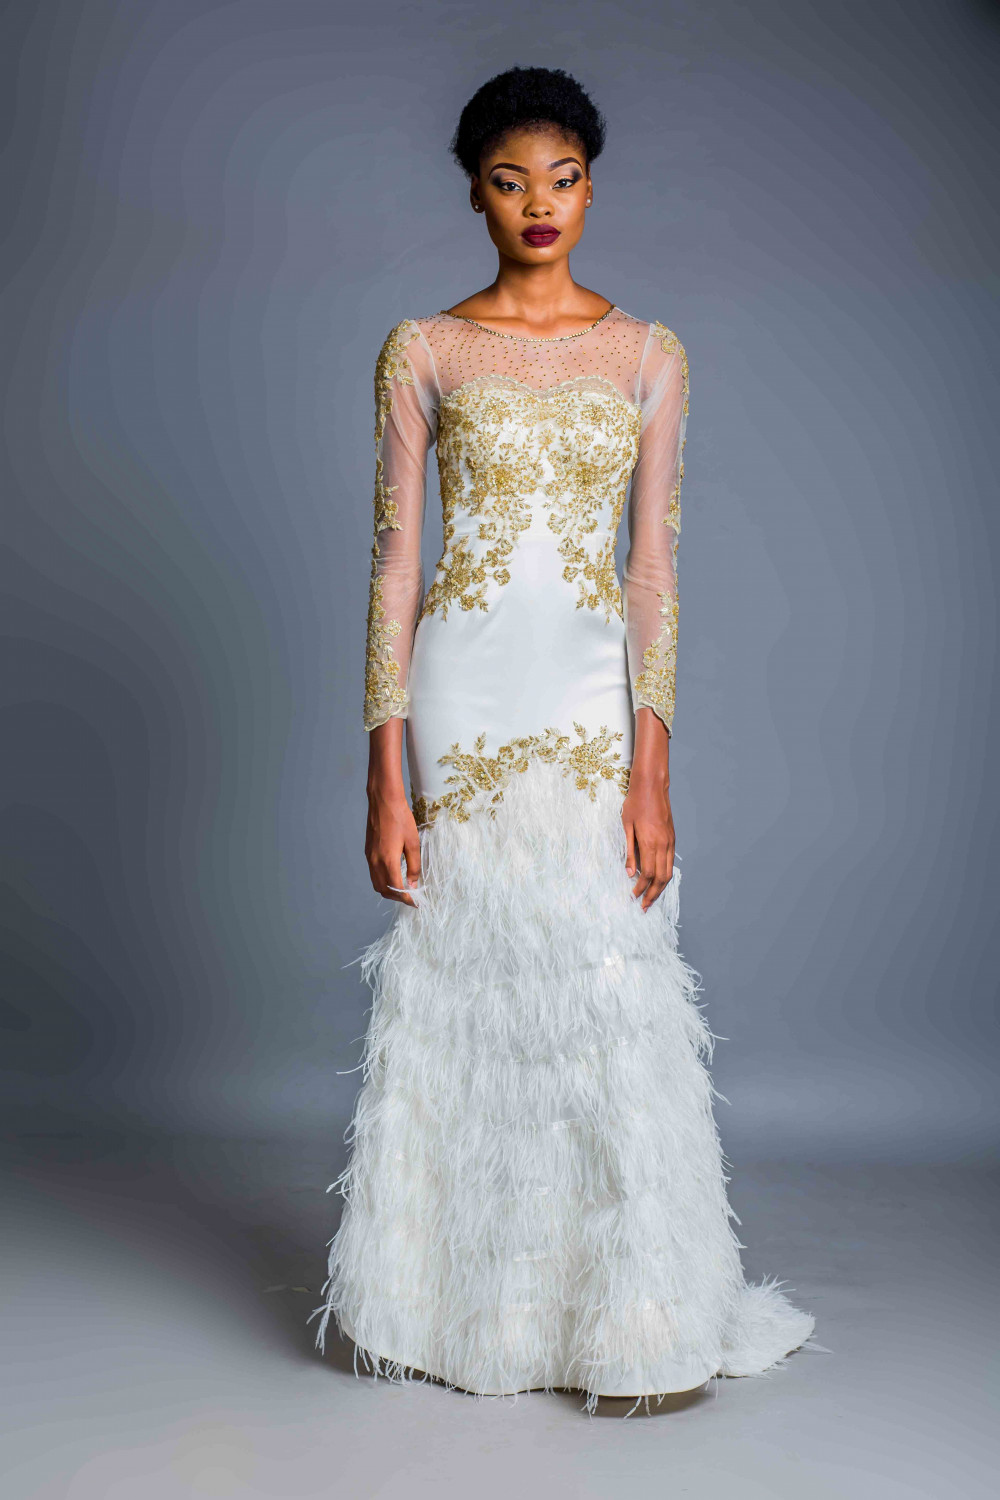 Hollerose Designs 2016 Collection Bridal 8